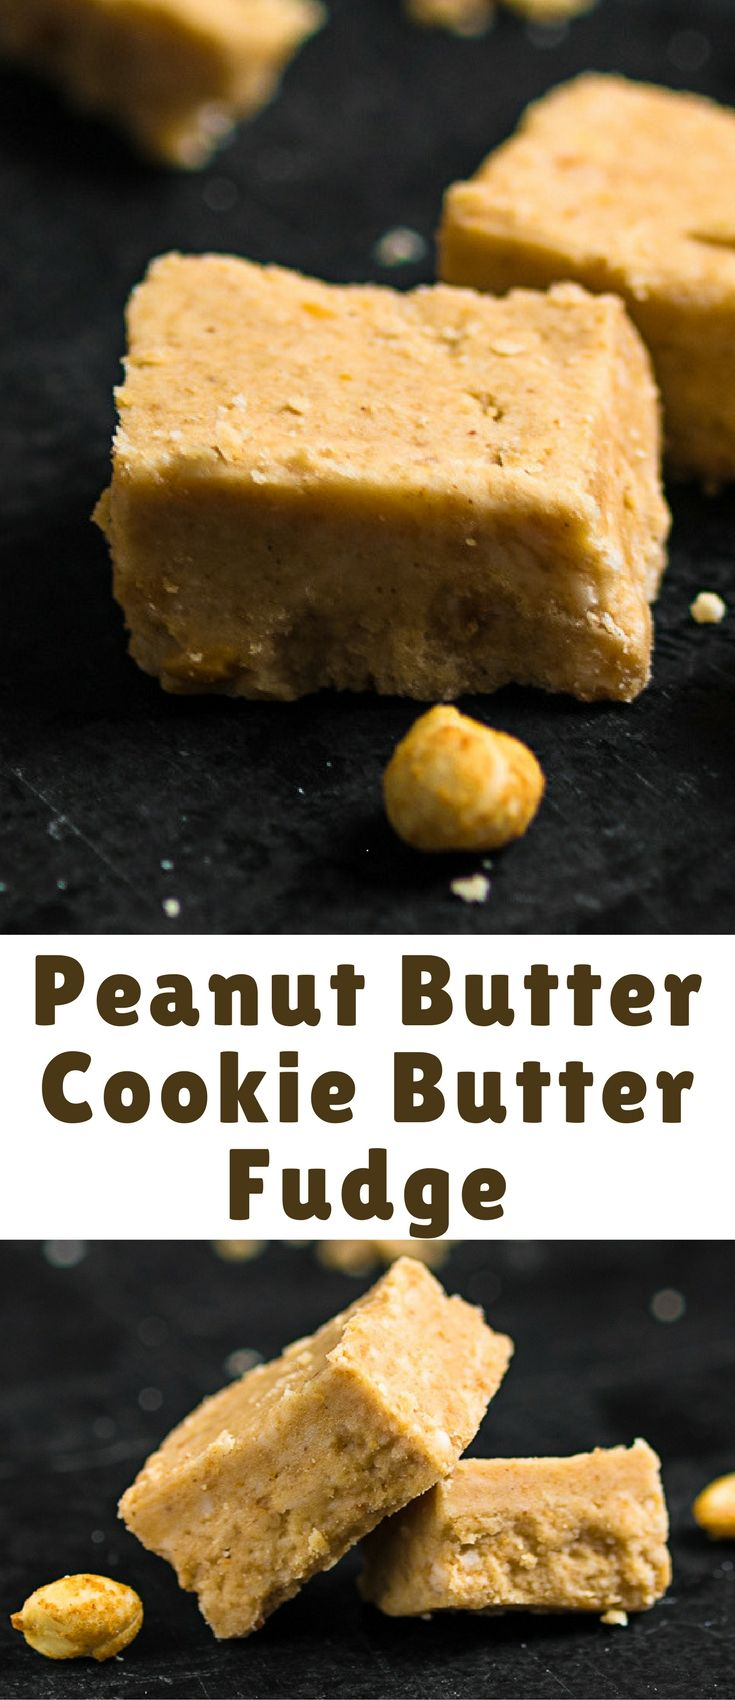 Peanut Butter Cookie Butter Fudge, a super simple no-bake dessert made from Speculoos (AKA Biscoff spread) and creamy peanut butter.